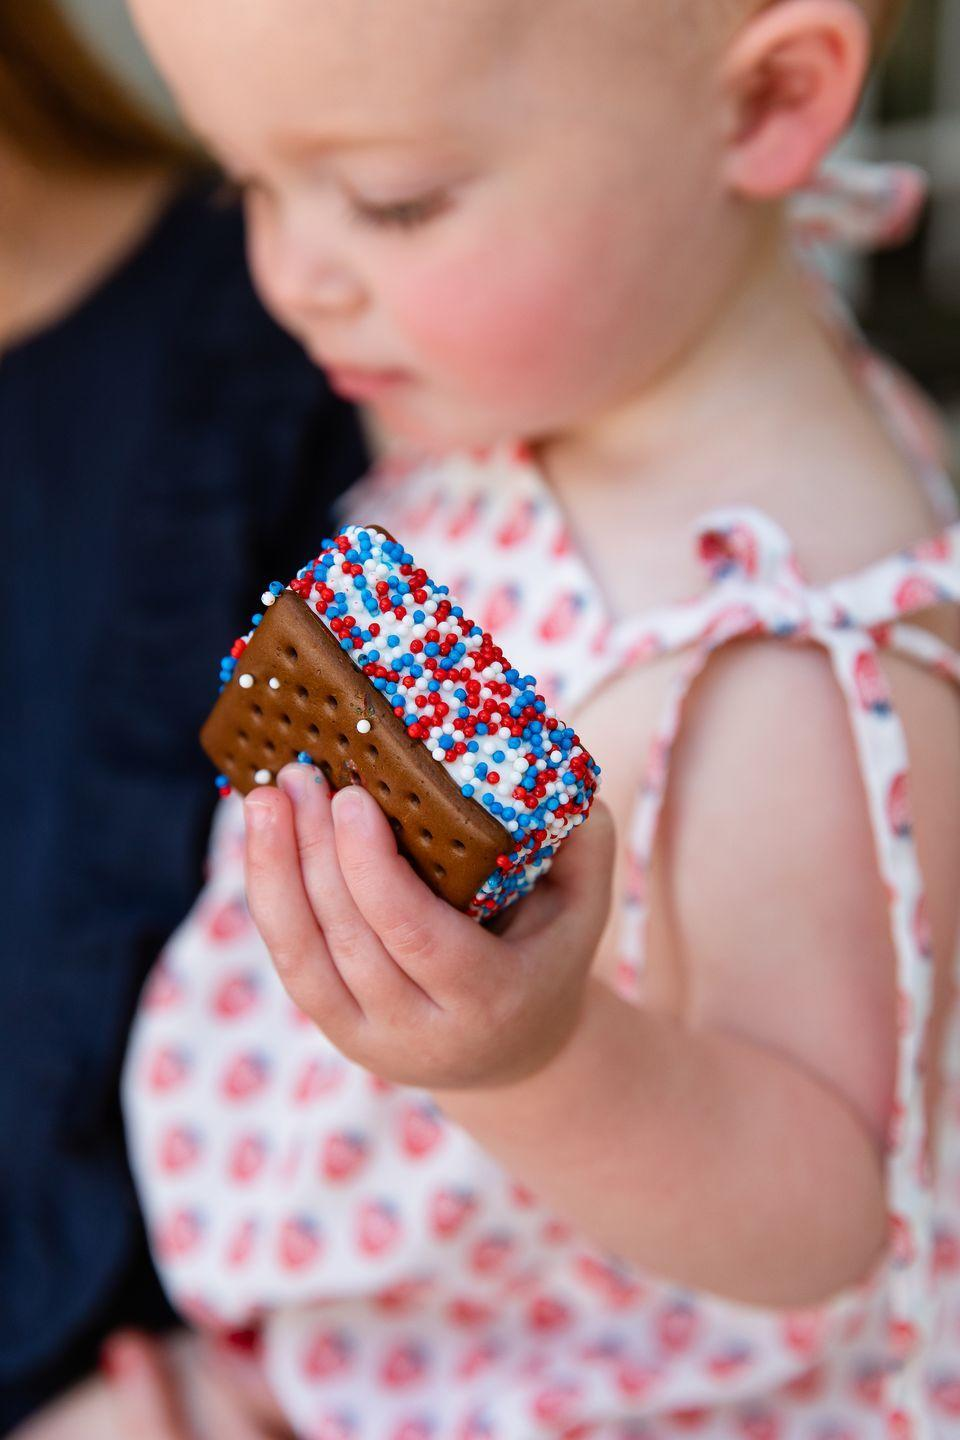 """<p><strong>What are your plans for the Fourth of July this year?</strong></p><p>We haven't really discussed how we are going to handle the Fourth yet. We usually throw a big party every year, so depending on health regulations, we will hopefully get to throw a family-oriented party outdoors. We live in Franklin, Tennessee, and the Franklin fireworks are shot essentially in our backyard on the Fourth every year, so we all sit on quilts and watch them together. I just want people to feel like they can take off their shoes and relax. And that's what the Fourth of July is all about. I like to serve simple food, like hamburgers and hot dogs, but I'll make some homemade relish and unique toppings that make it special. </p><p><strong>What are a few of your top summer entertaining tips?</strong></p><p>I always set up the food indoors. I just think it's near impossible to set up a buffet outside and not have to worry about it the whole time. People will be in and out anyways. </p><p>I also always set up something outside for the kids to keep them from wandering around the house and within sight, like a bubble machine or craft. Last year we made hand-printed T-shirts that looked like American flags that the kids put on in time for the fireworks once they dried. Sprinklers are always fun too!</p><p>I like to keep a bucket of """"guest comfortability"""" items outside, like bug spray, sunscreen, wipes, bandage, so that parents can grab them as needed, and you're not having to run in and out of the house when you're trying to make a cocktail and breathe. </p>"""